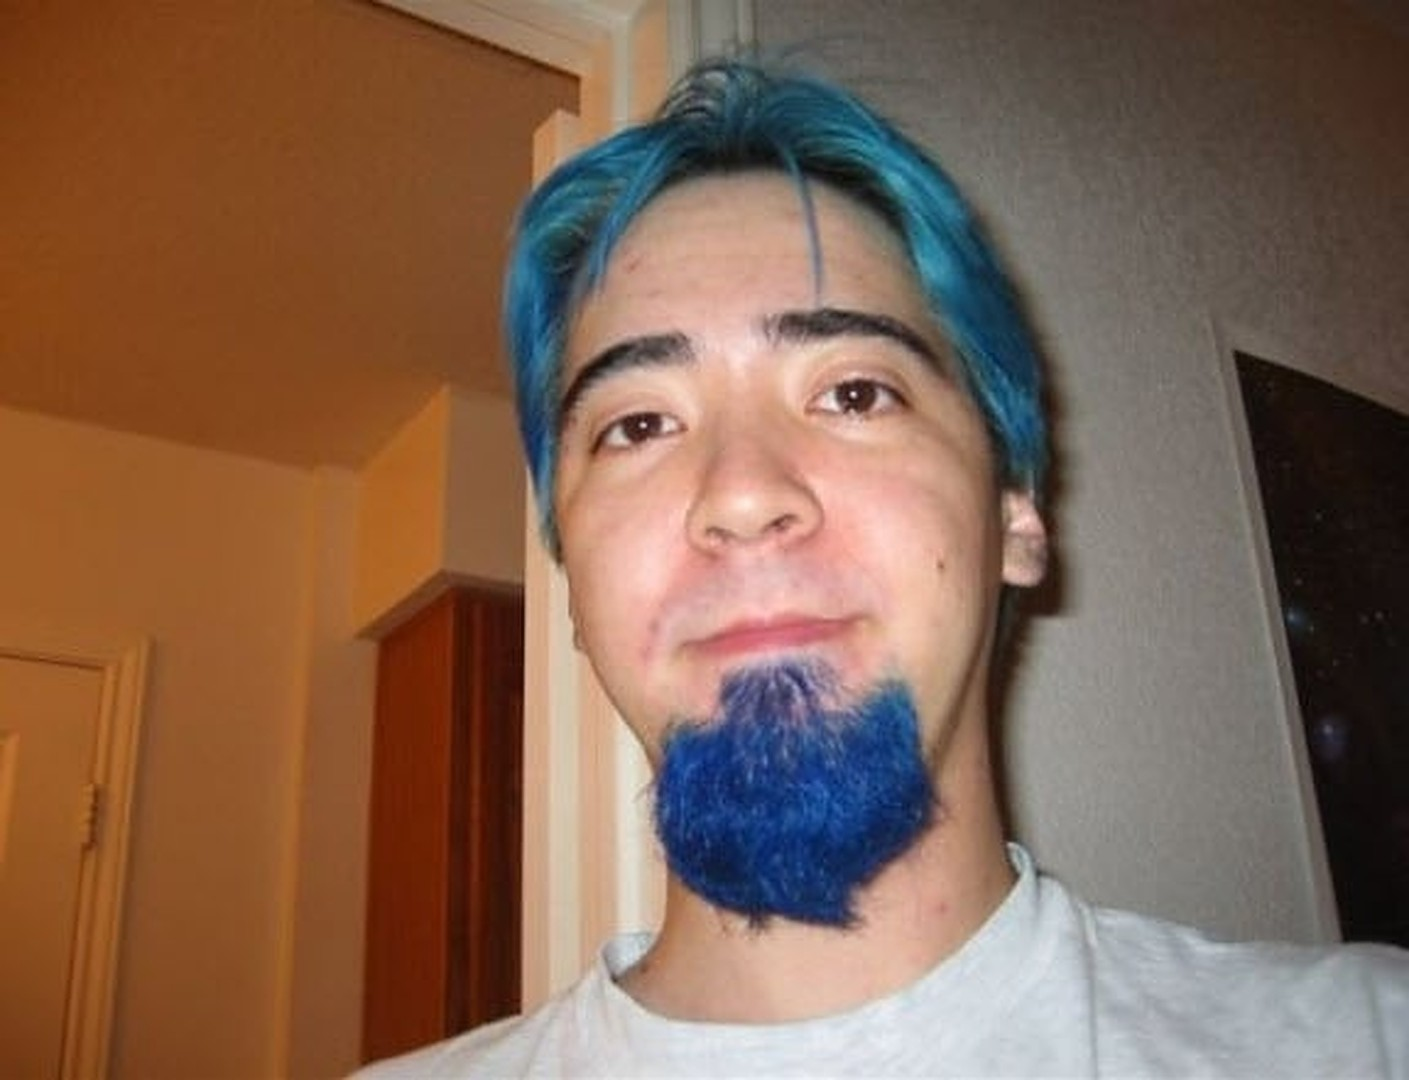 Blue color beard without mustache and hair